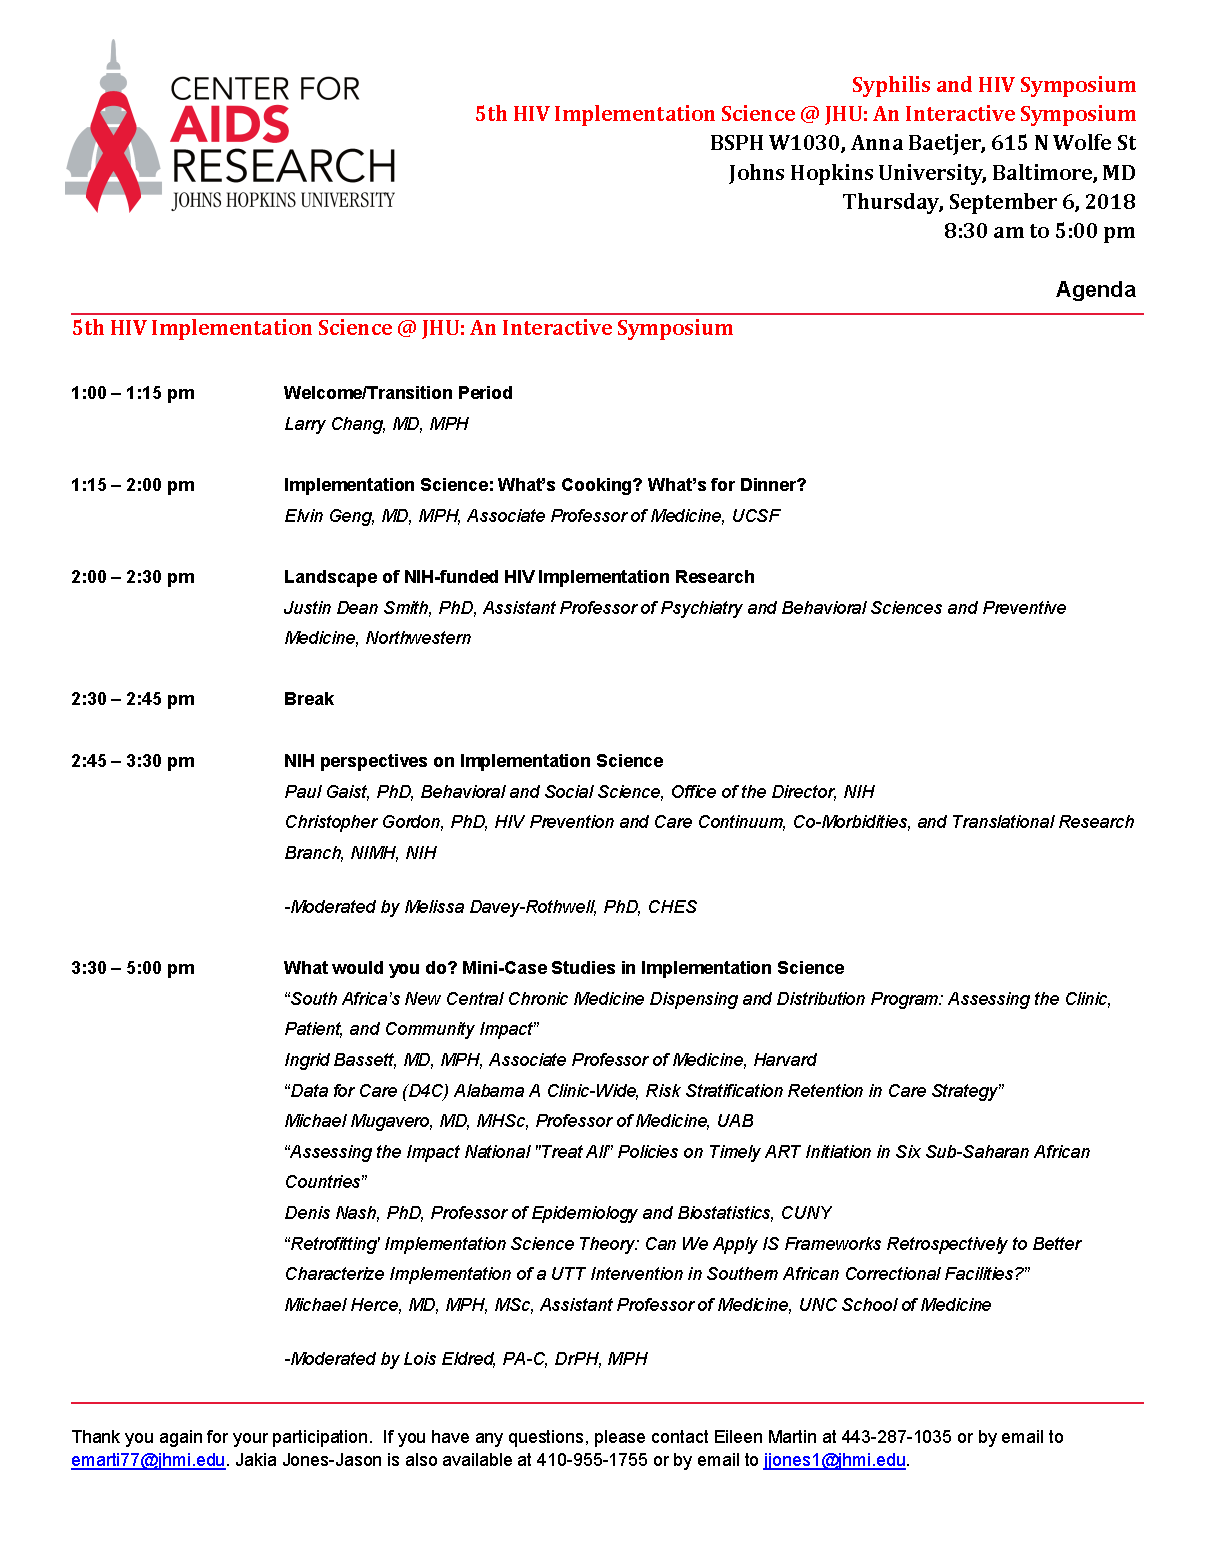 Symposia Agenda September 6-FINAL_Page_2.png